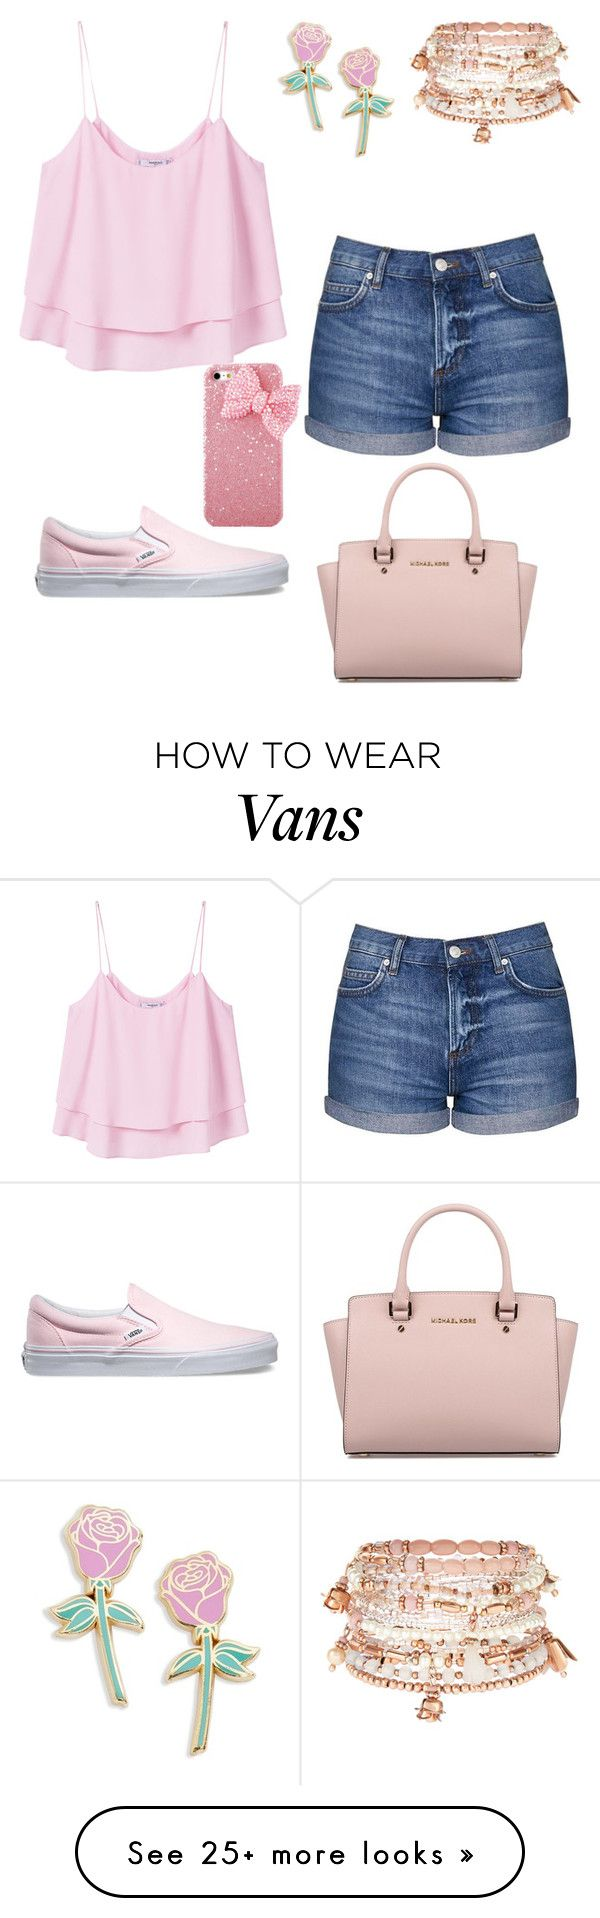 """""""Pink roses"""" by sweet-brownsuga on Polyvore featuring MANGO, Topshop, Vans, Big Bud Press, Accessorize and Michael Kors"""